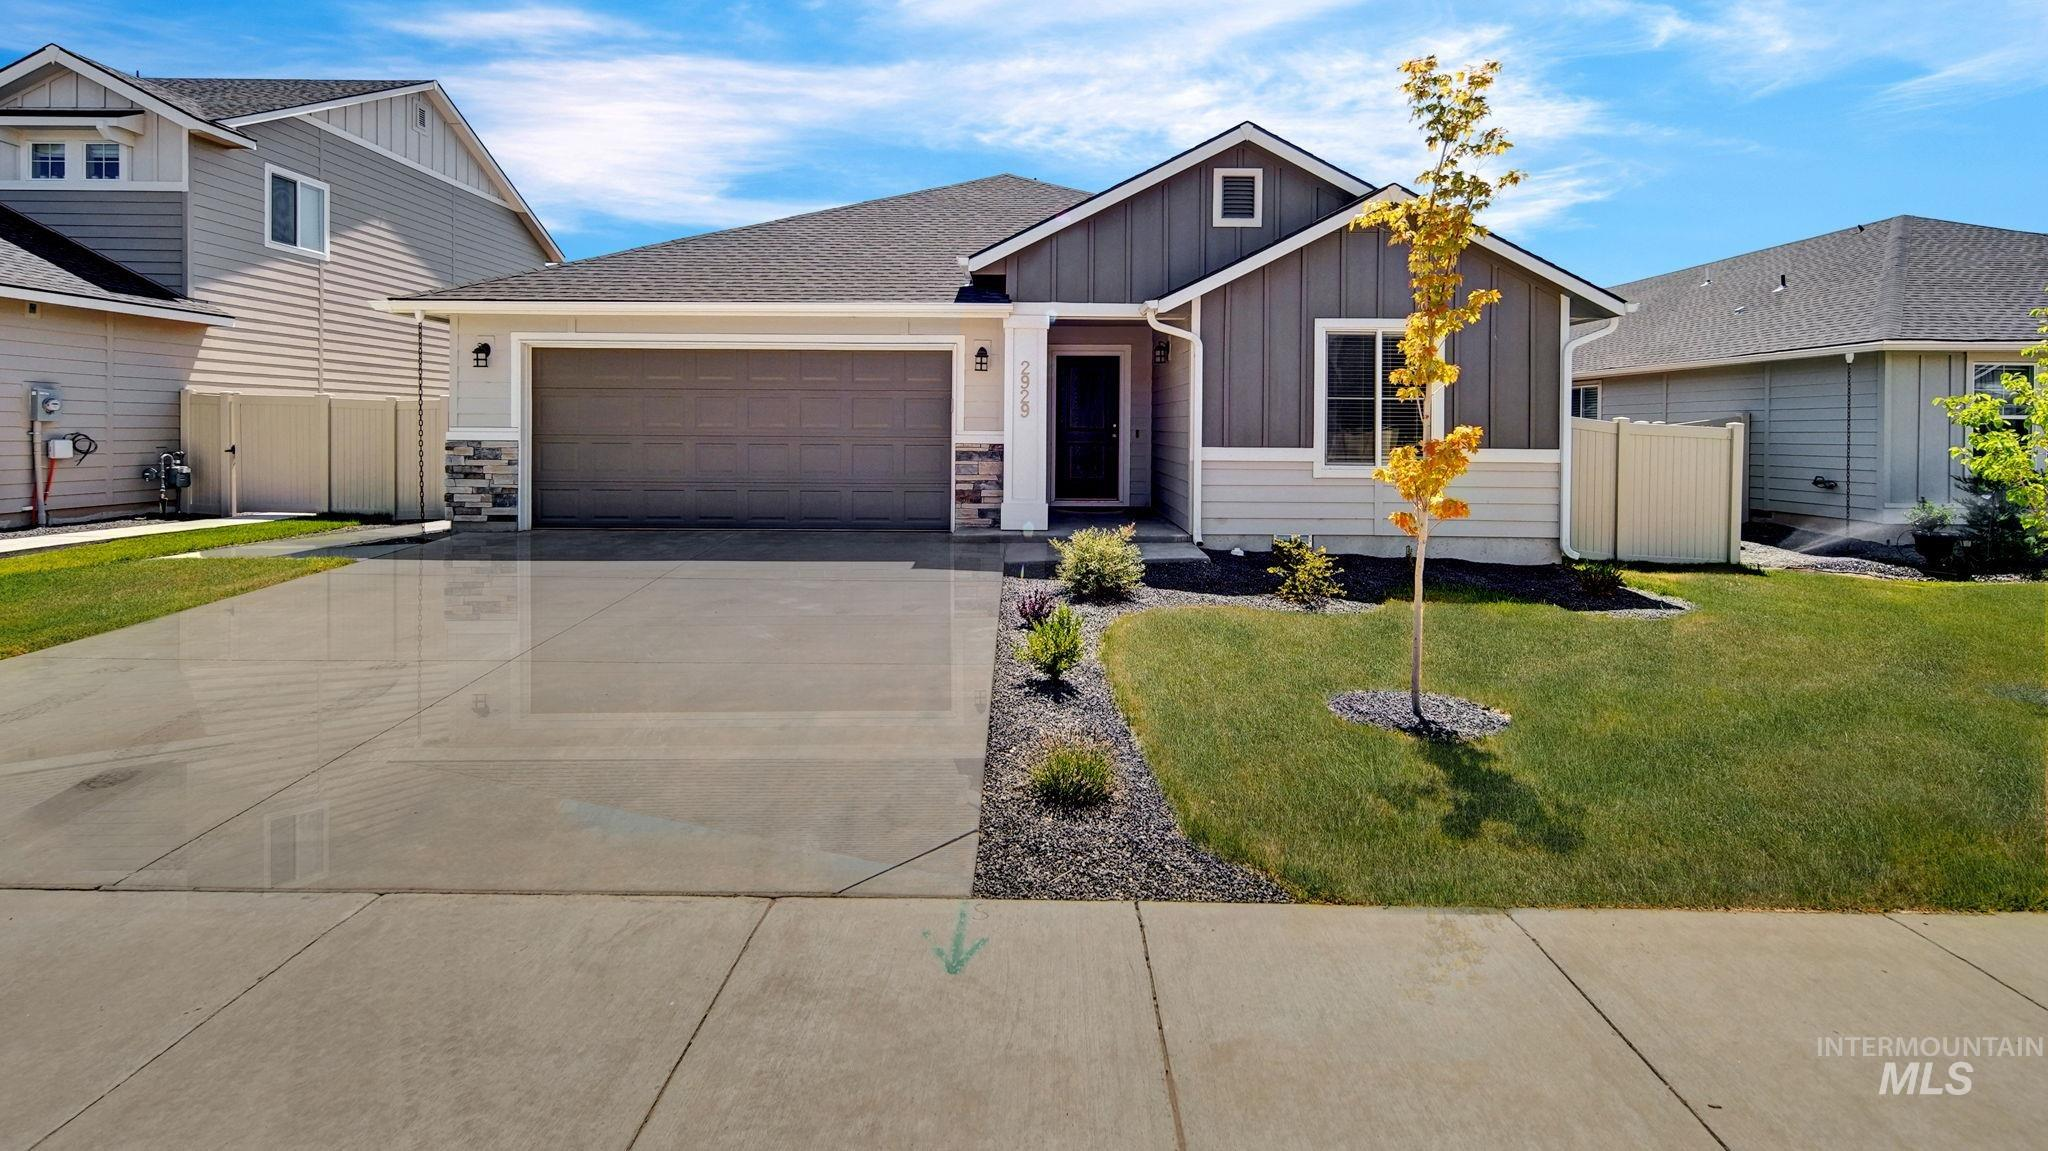 Why pay new construction prices? Better than new home features full sprinkler system, window coverings, enlarged rear patio + concrete walkway on east side of home.  Centrally located with large community park and playground for your personal enjoyment.  Split bedroom plan offers a generous sized, vaulted great room, large kitchen island, upgraded cabinets and abundant windows.  Beautiful wide plank vinyl flooring. Includes refrigerator, washer/dryer new in 2020 + ring doorbell.